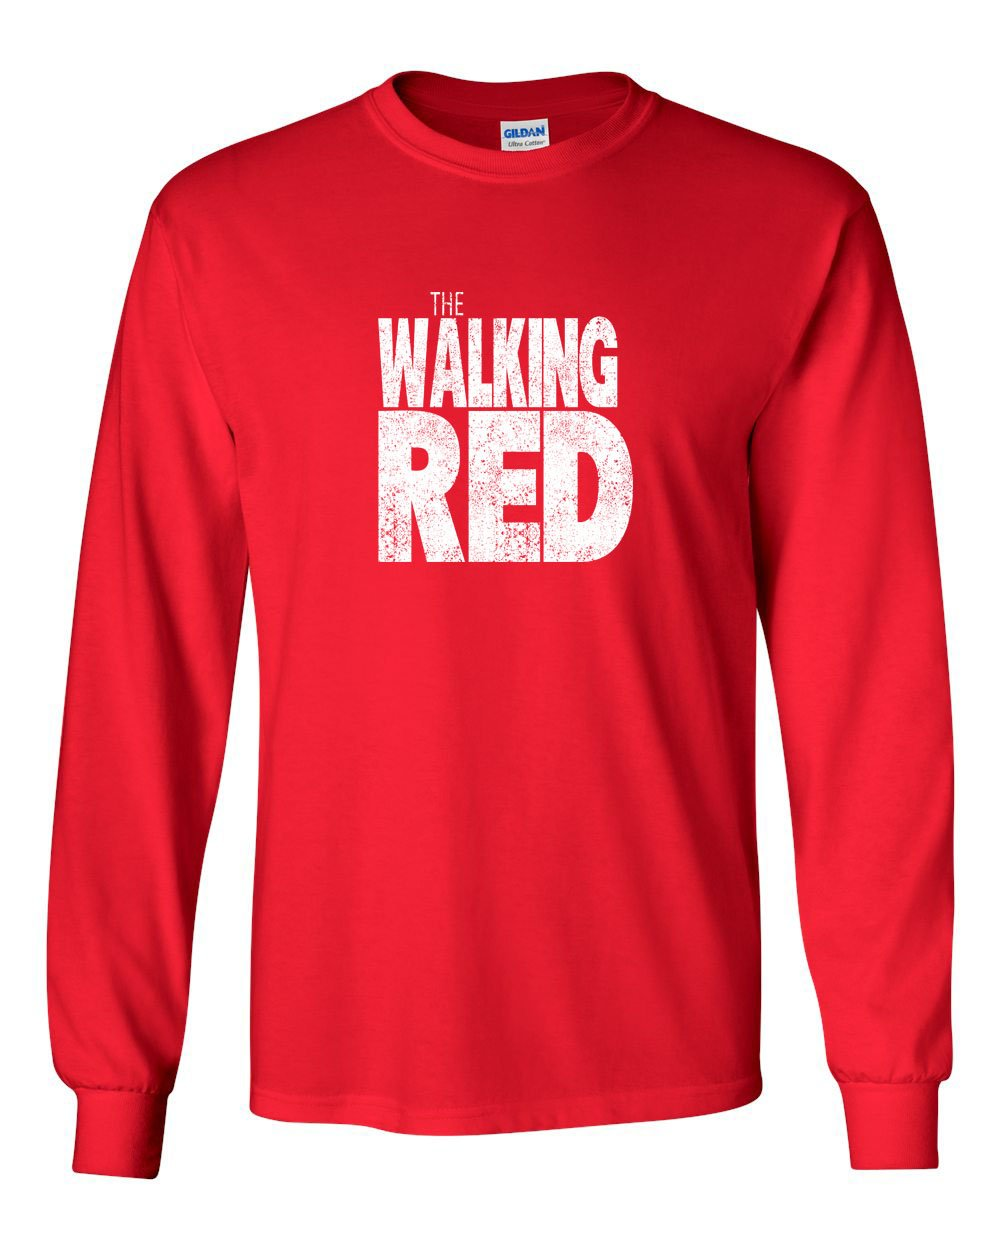 The Walking Red MENS Long Sleeve Heavy Cotton T-Shirt